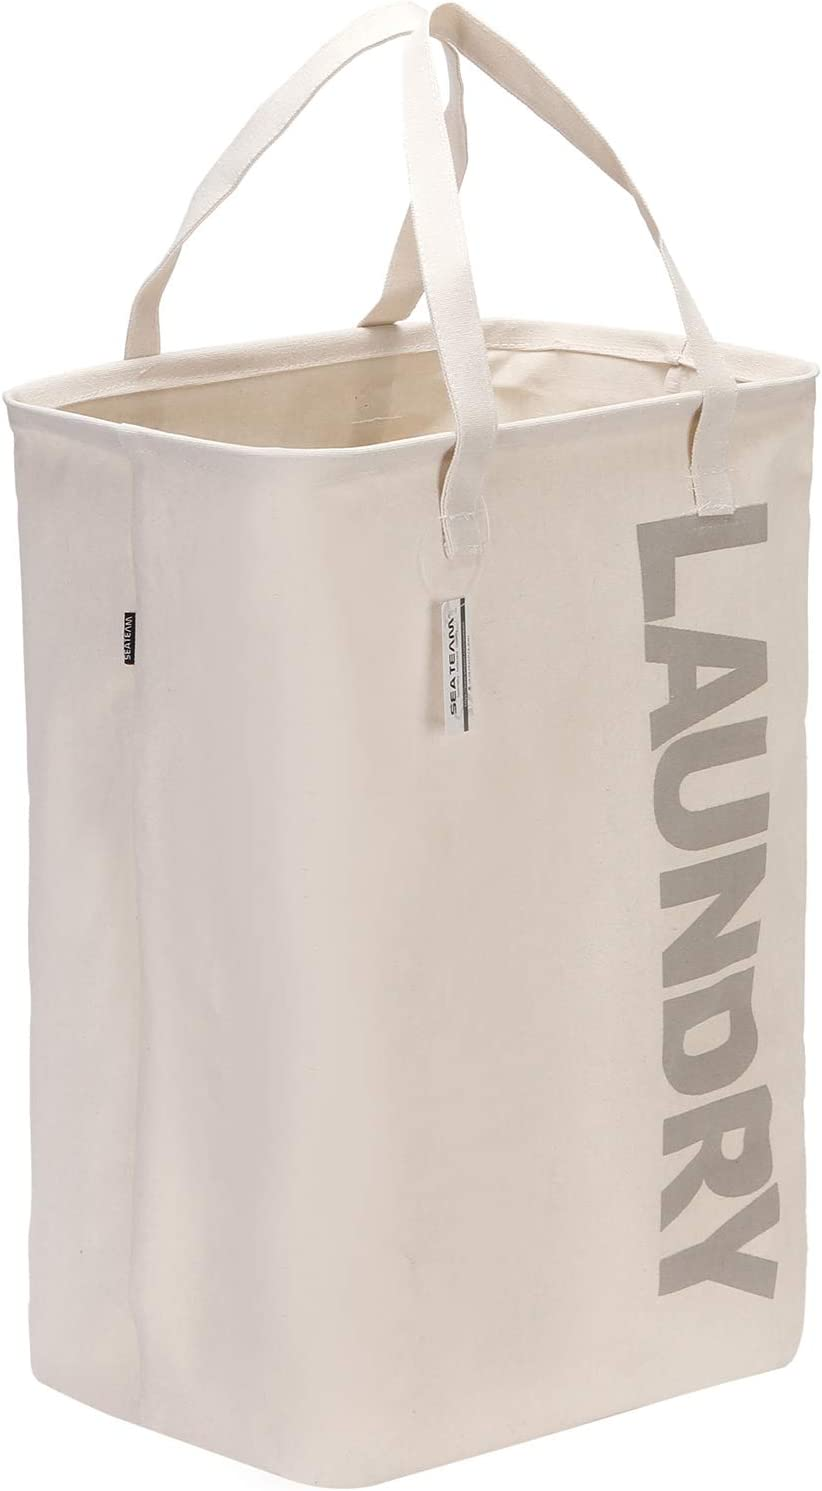 """Sea Team 23.6"""" Large Size Canvas Fabric Laundry Hamper Collapsible Rectangular Storage Basket with Waterproof Coating Inner and Handles, Grey Letter"""